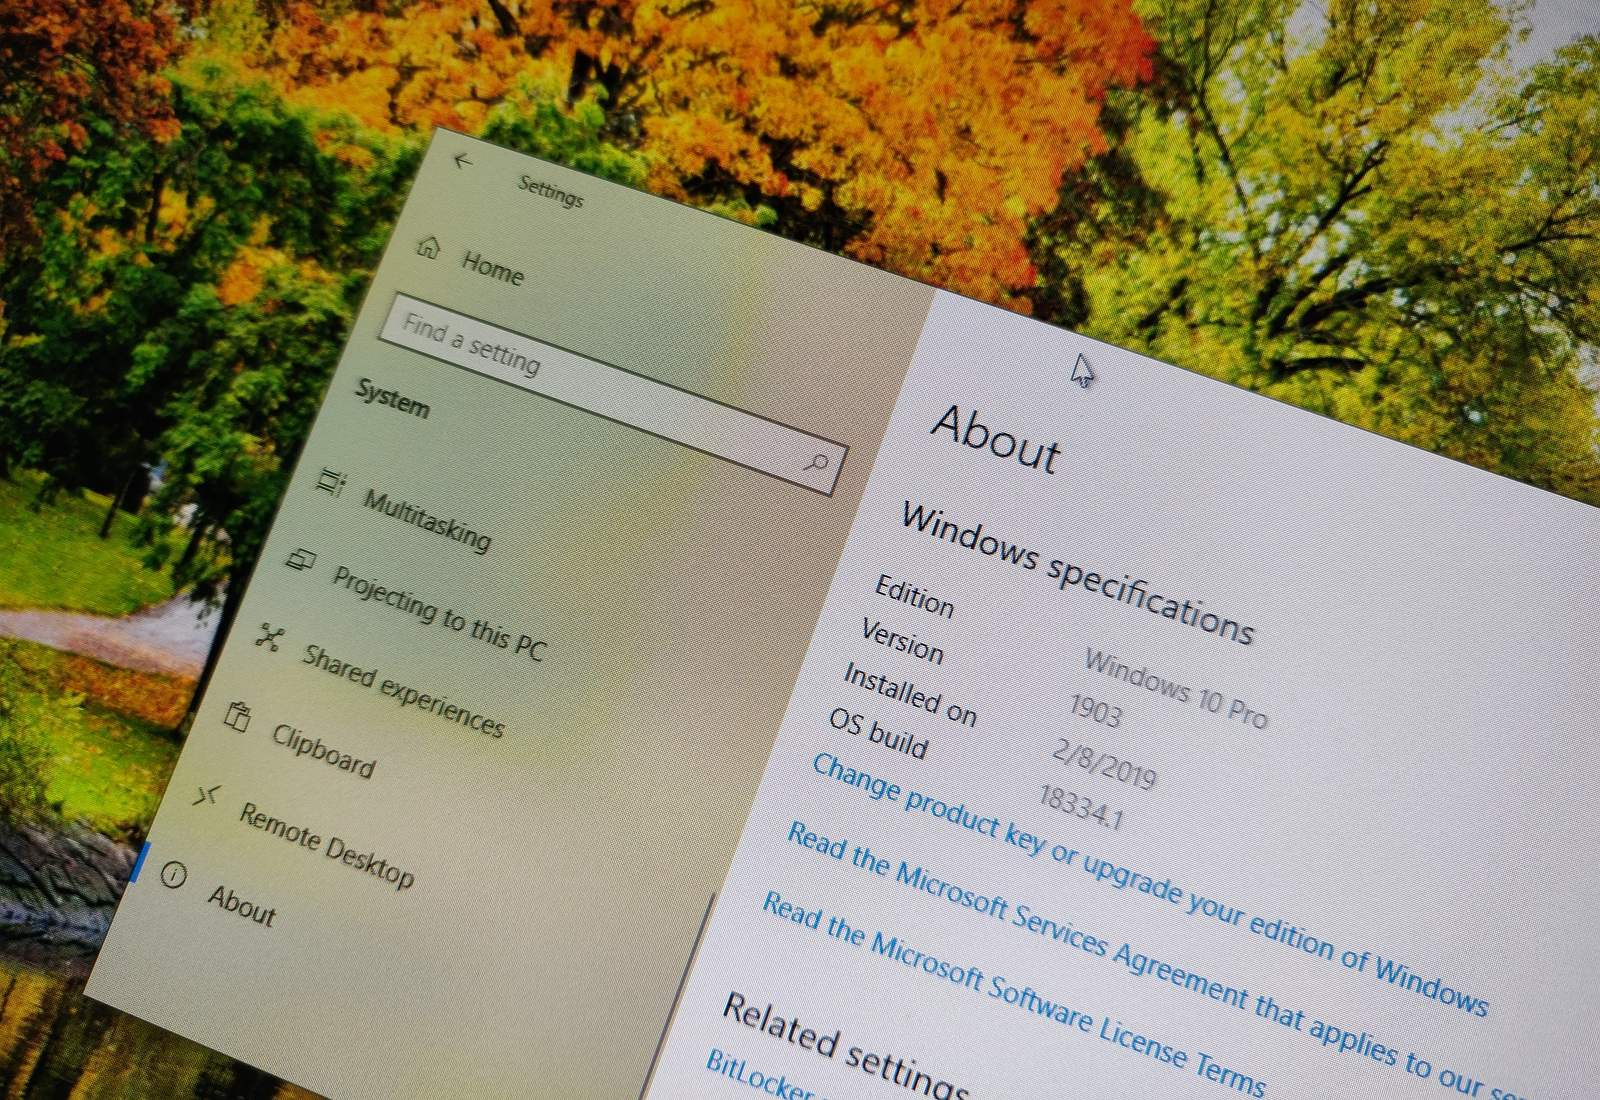 Windows 10 version 1903 without problems